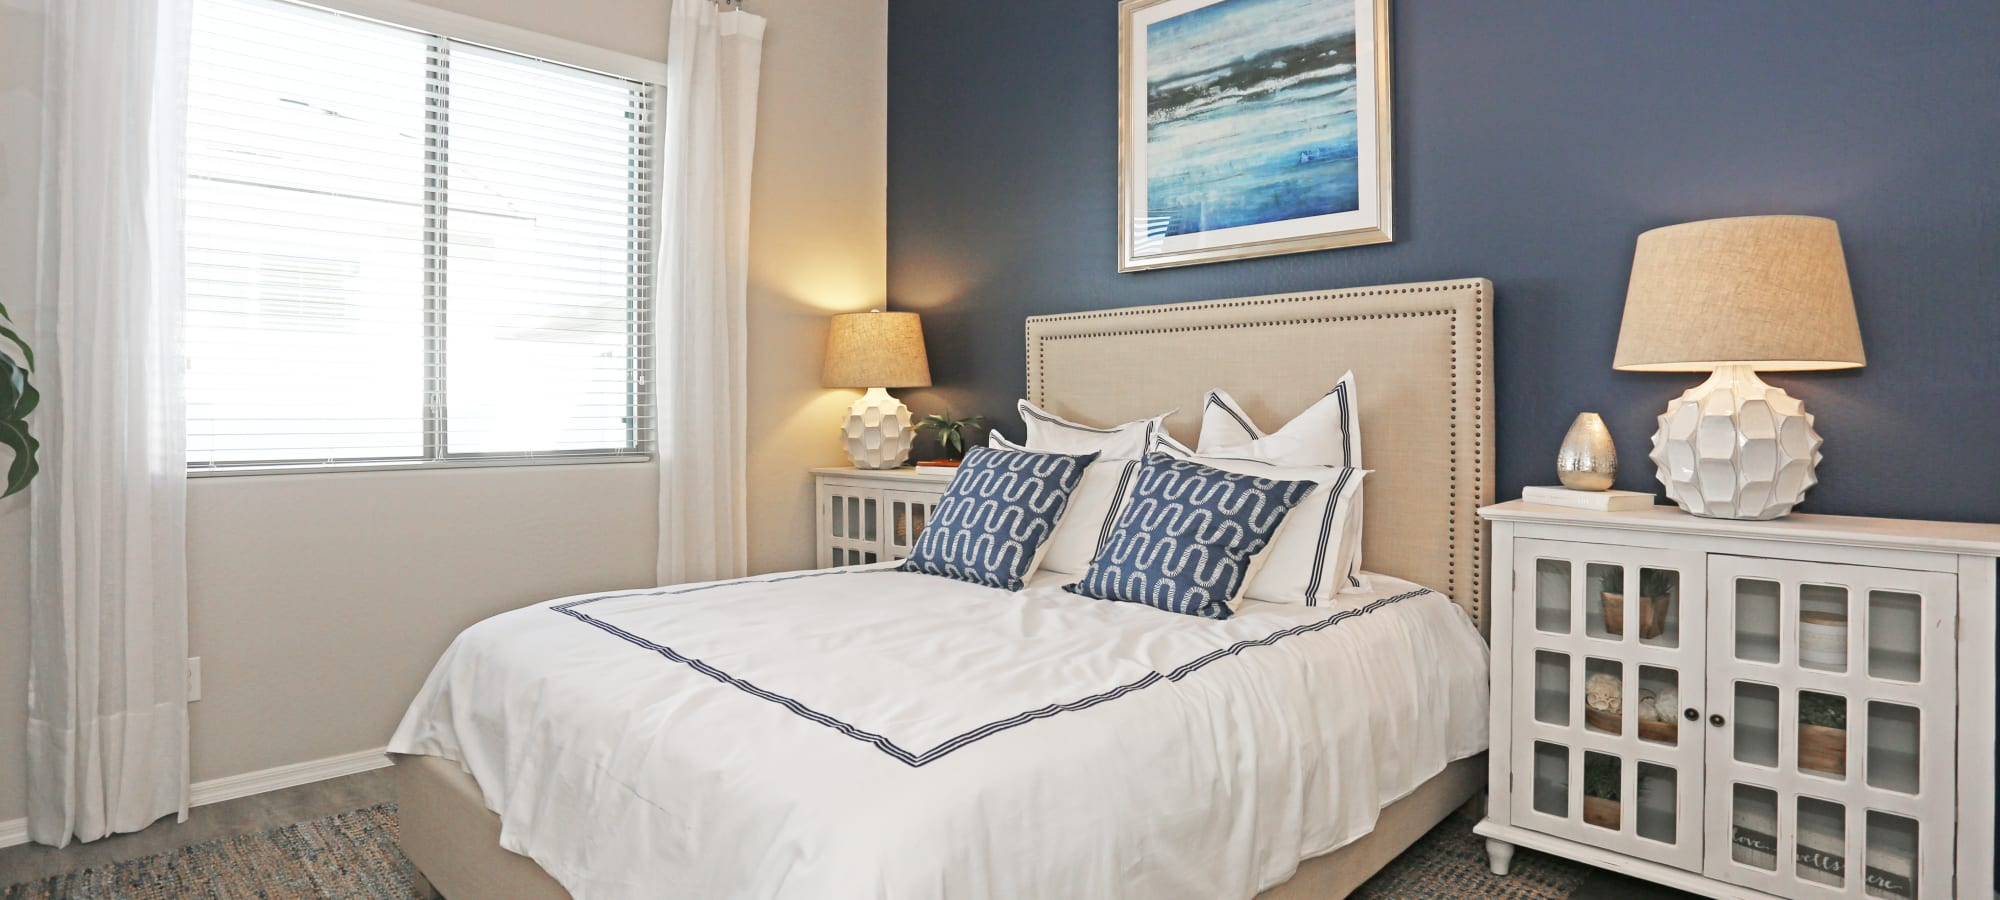 Plenty of natural light in bedroom of model home at Christopher Todd Communities On Mountain View in Surprise, Arizona